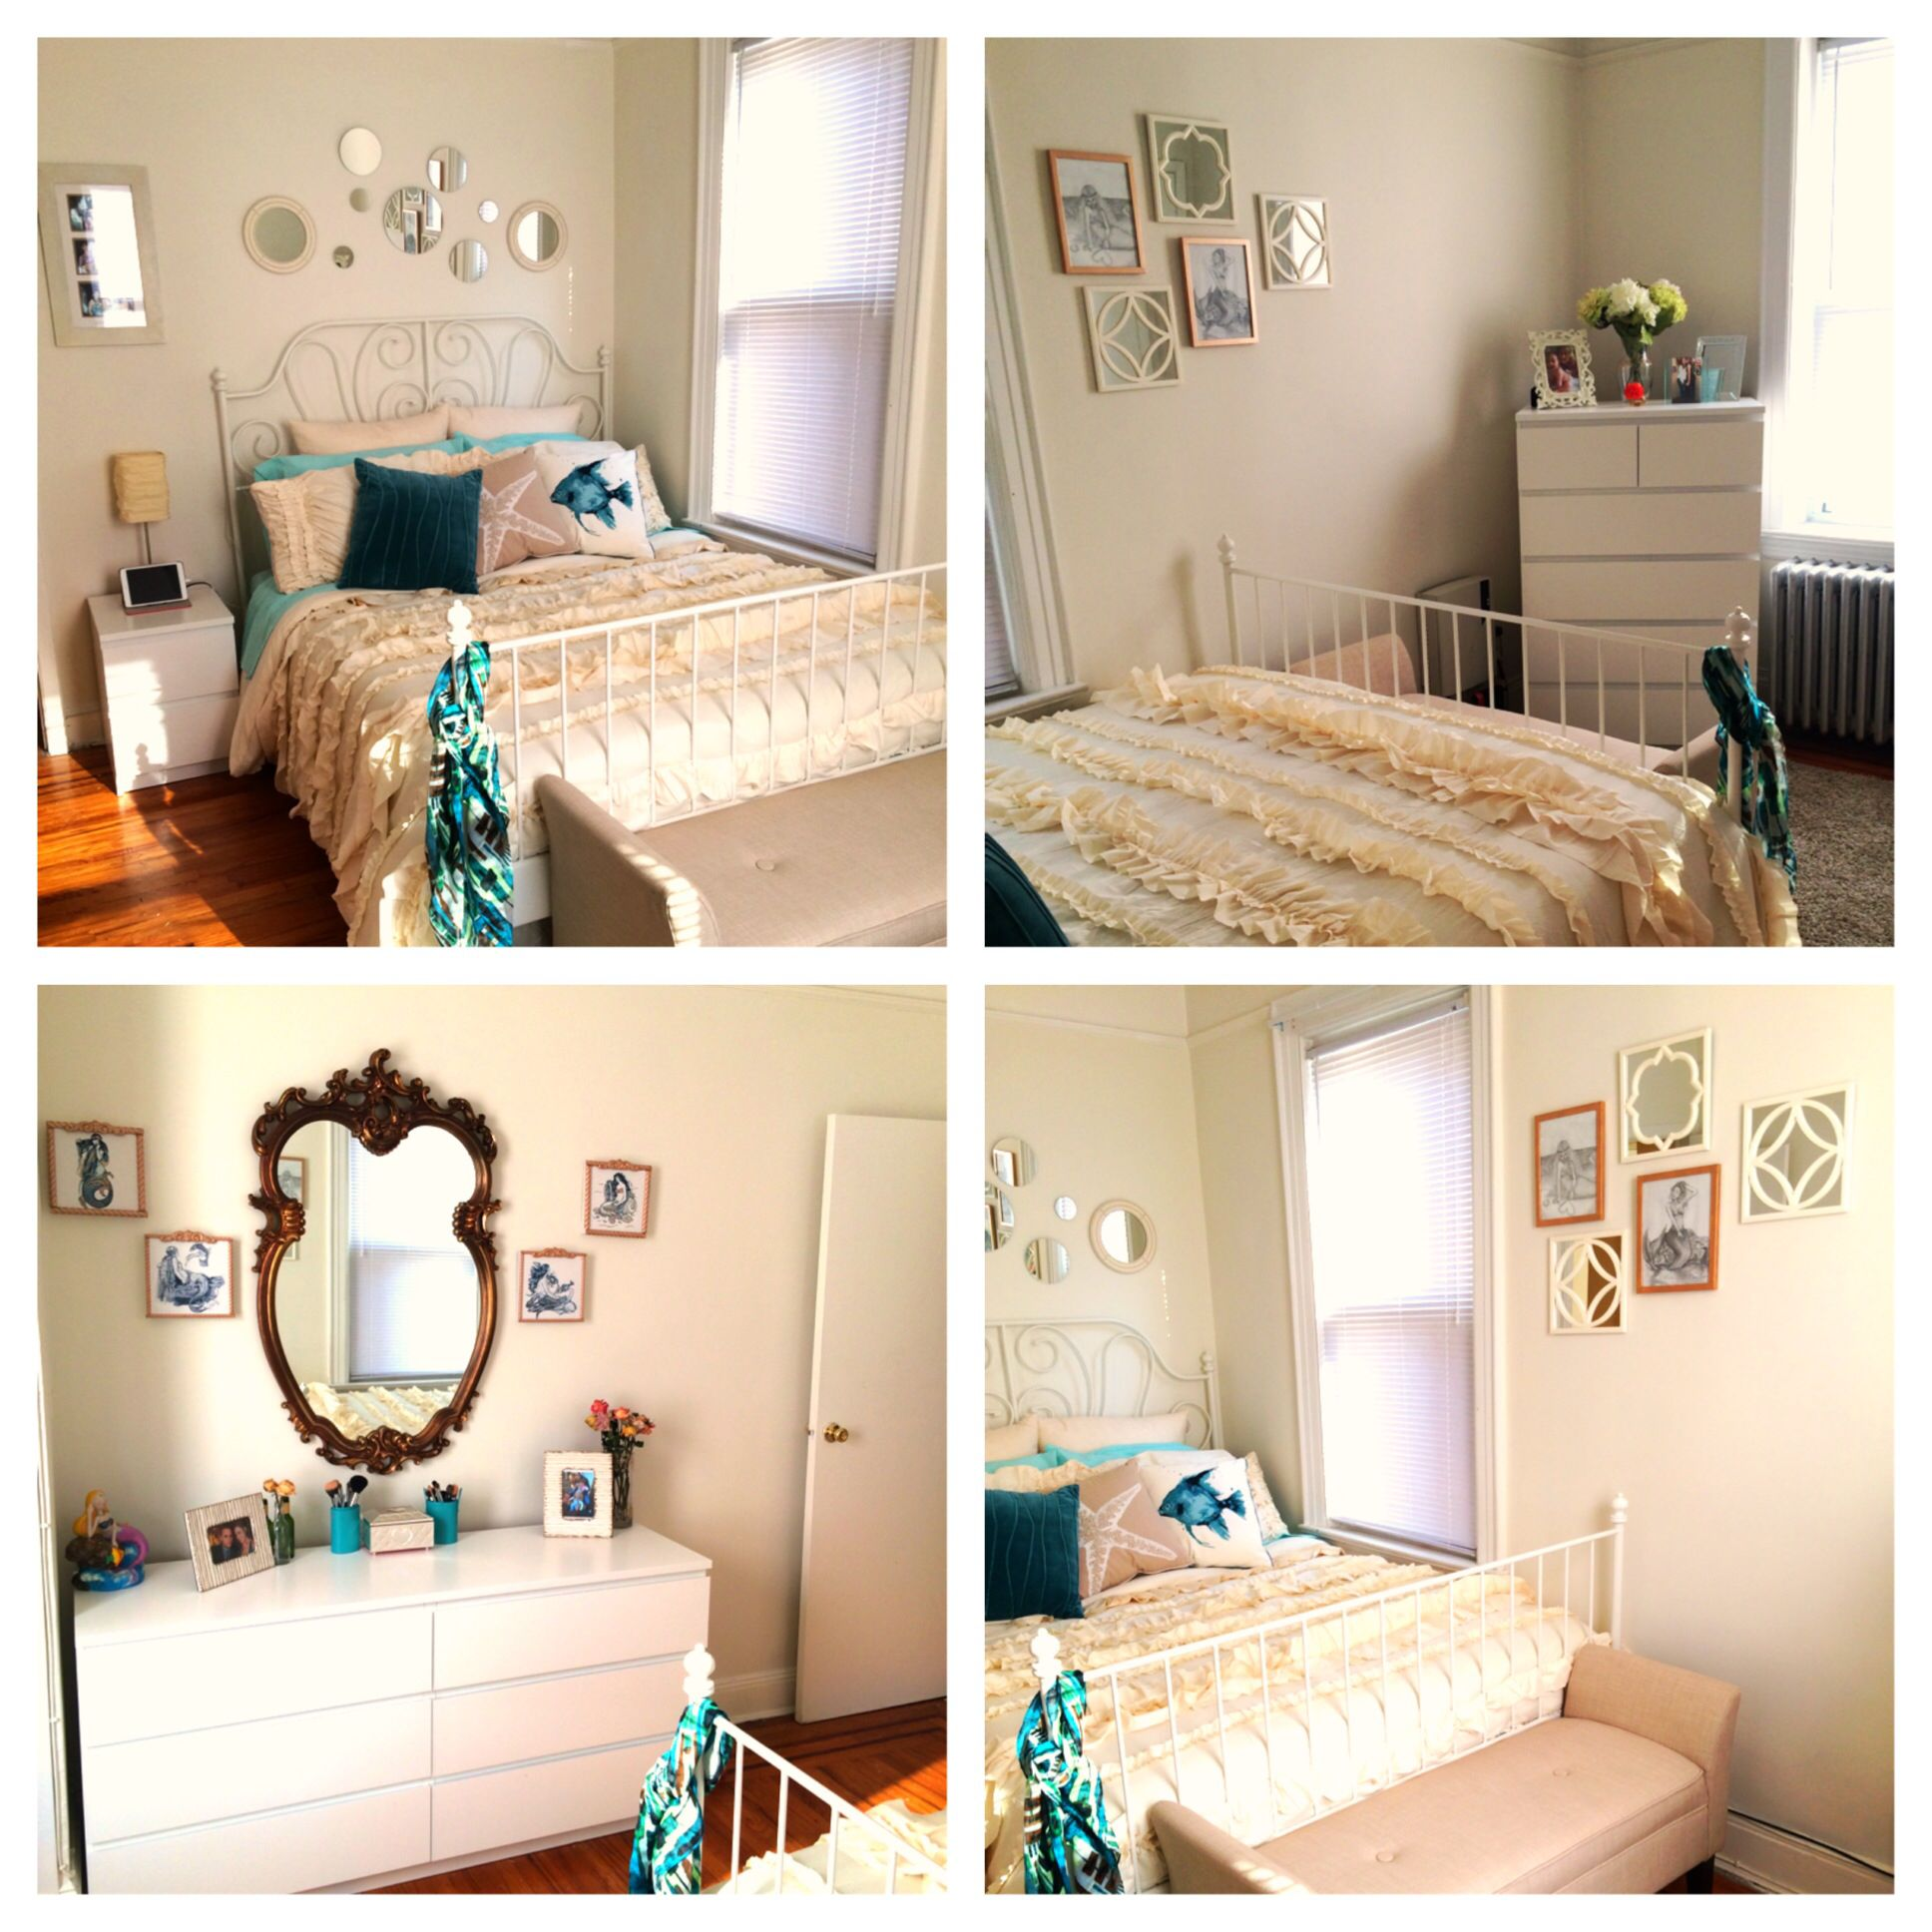 Cream, gold and turquoise color scheme for small bedroom